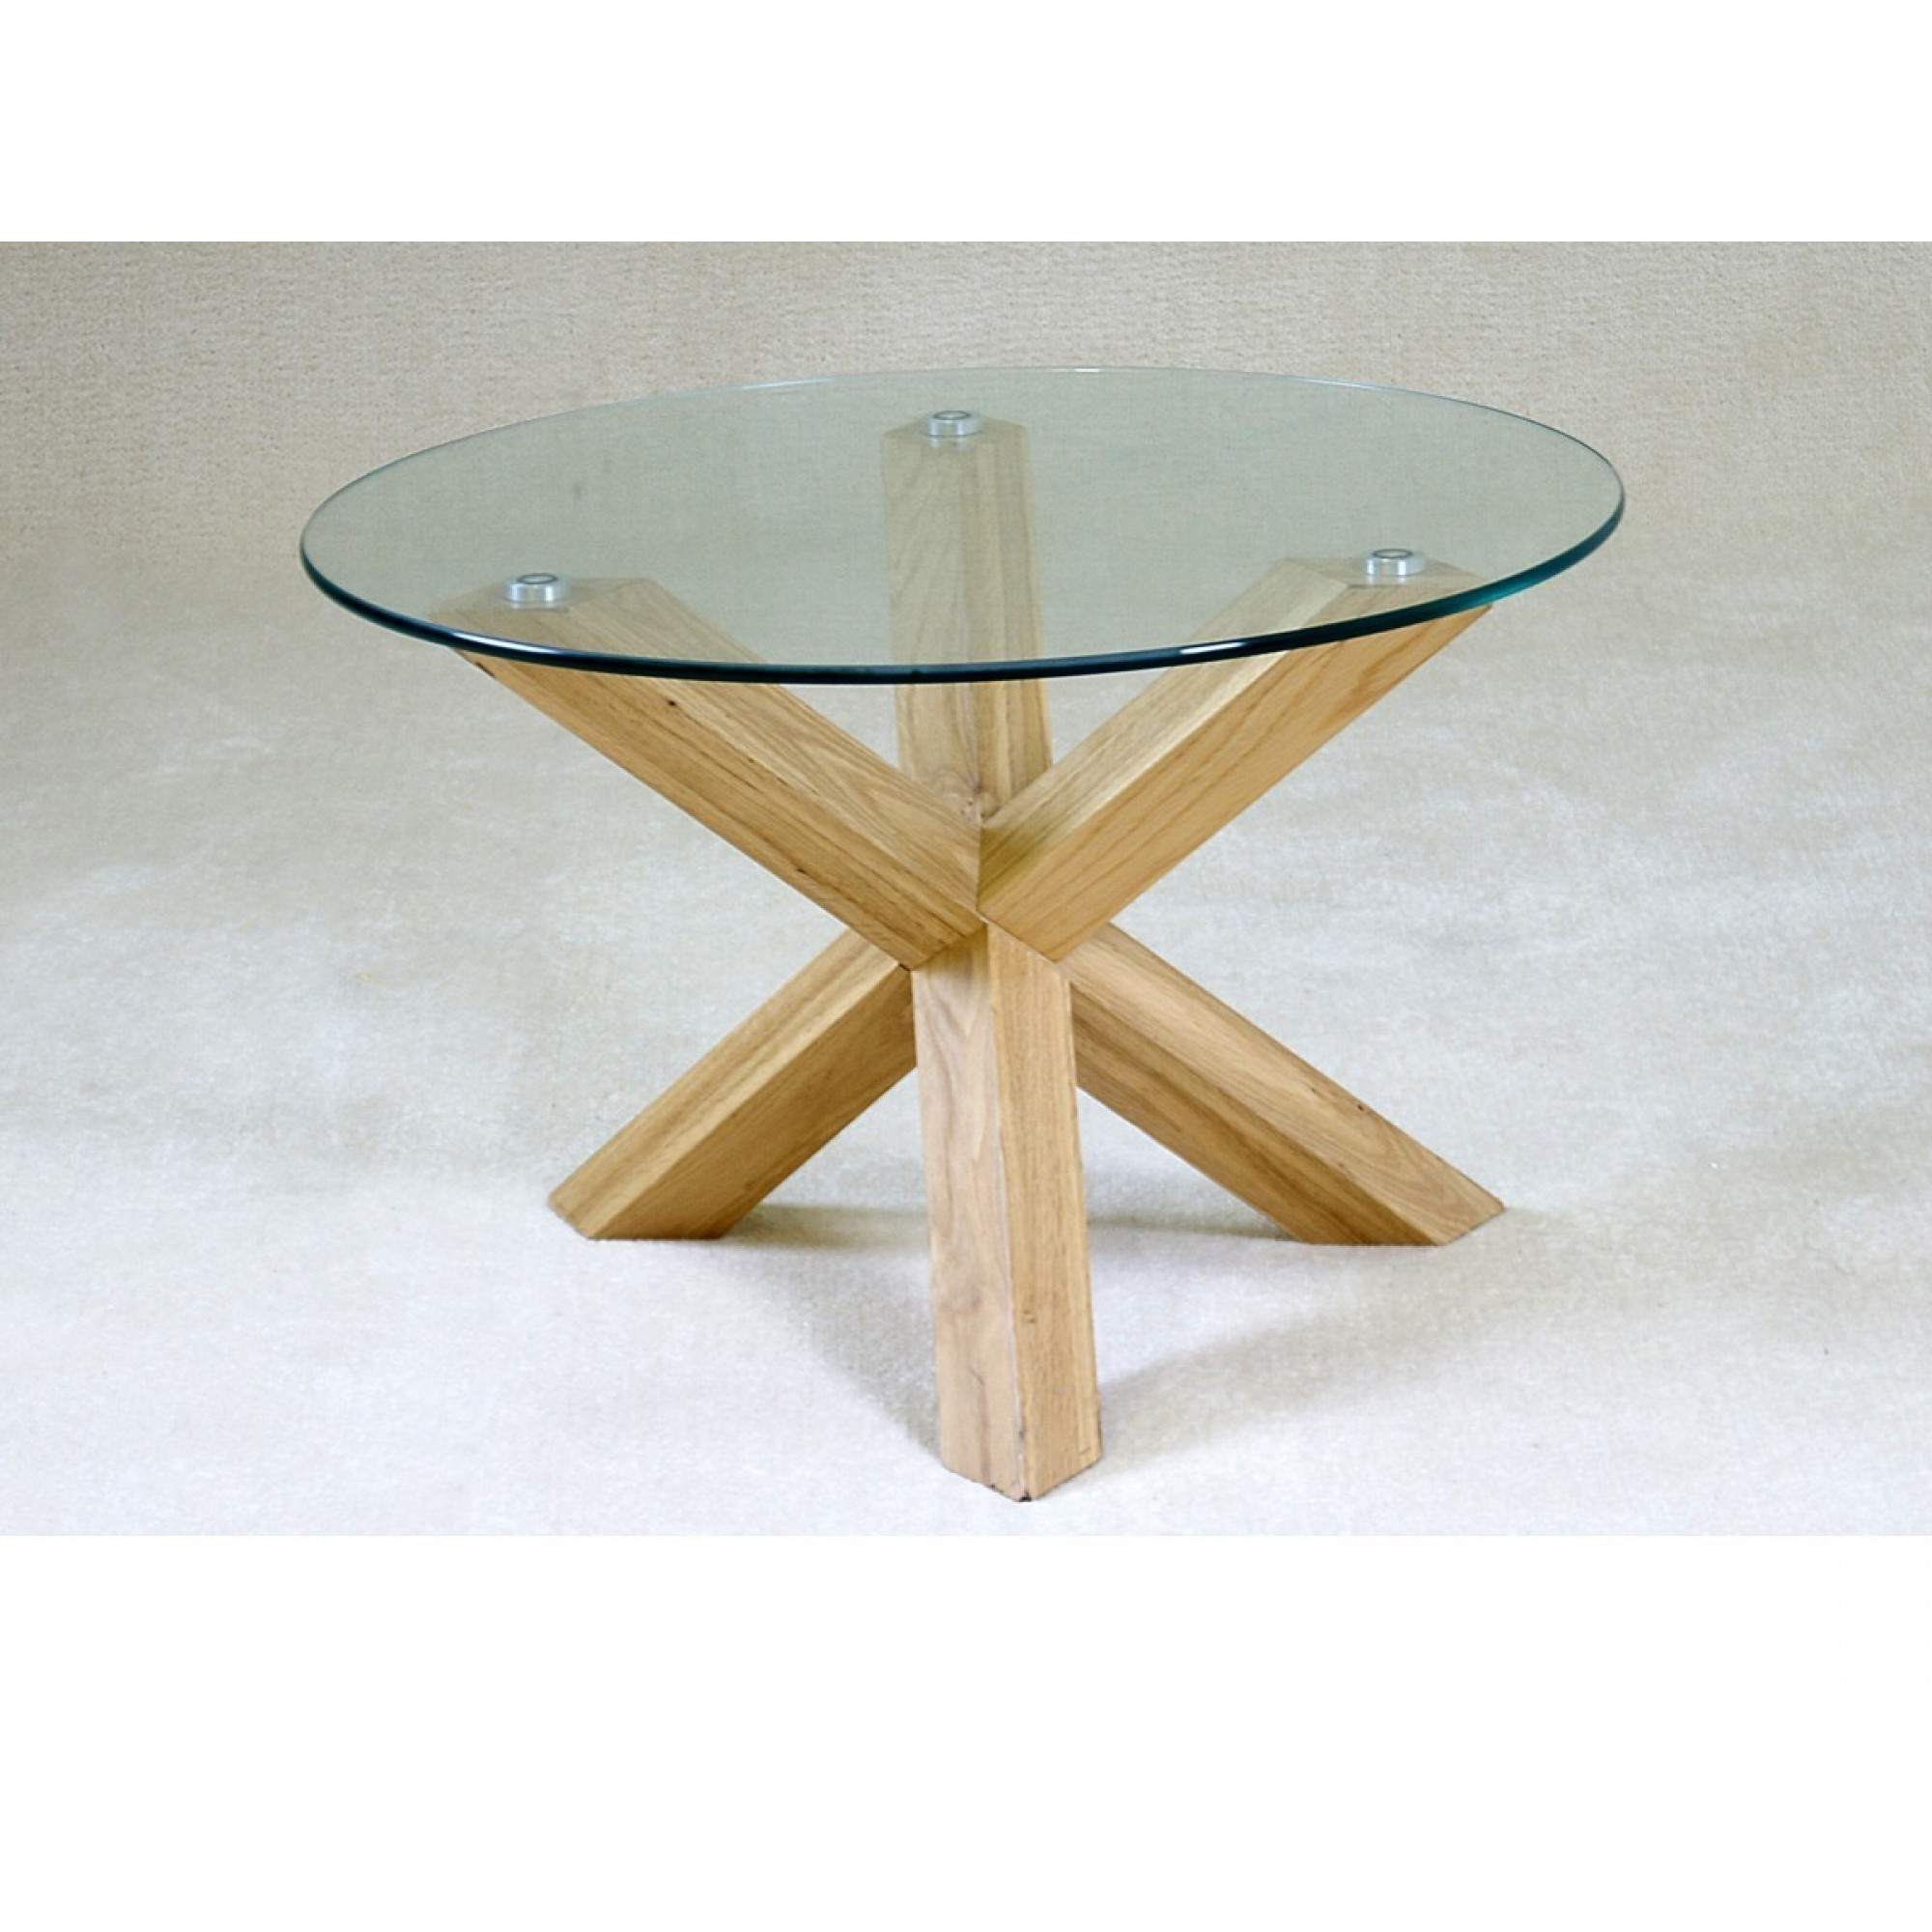 Table Round Glass Coffee With Wood Base Sunroom Top Table For Widely Used Eames Style Dining Tables With Chromed Leg And Tempered Glass Top (View 25 of 30)